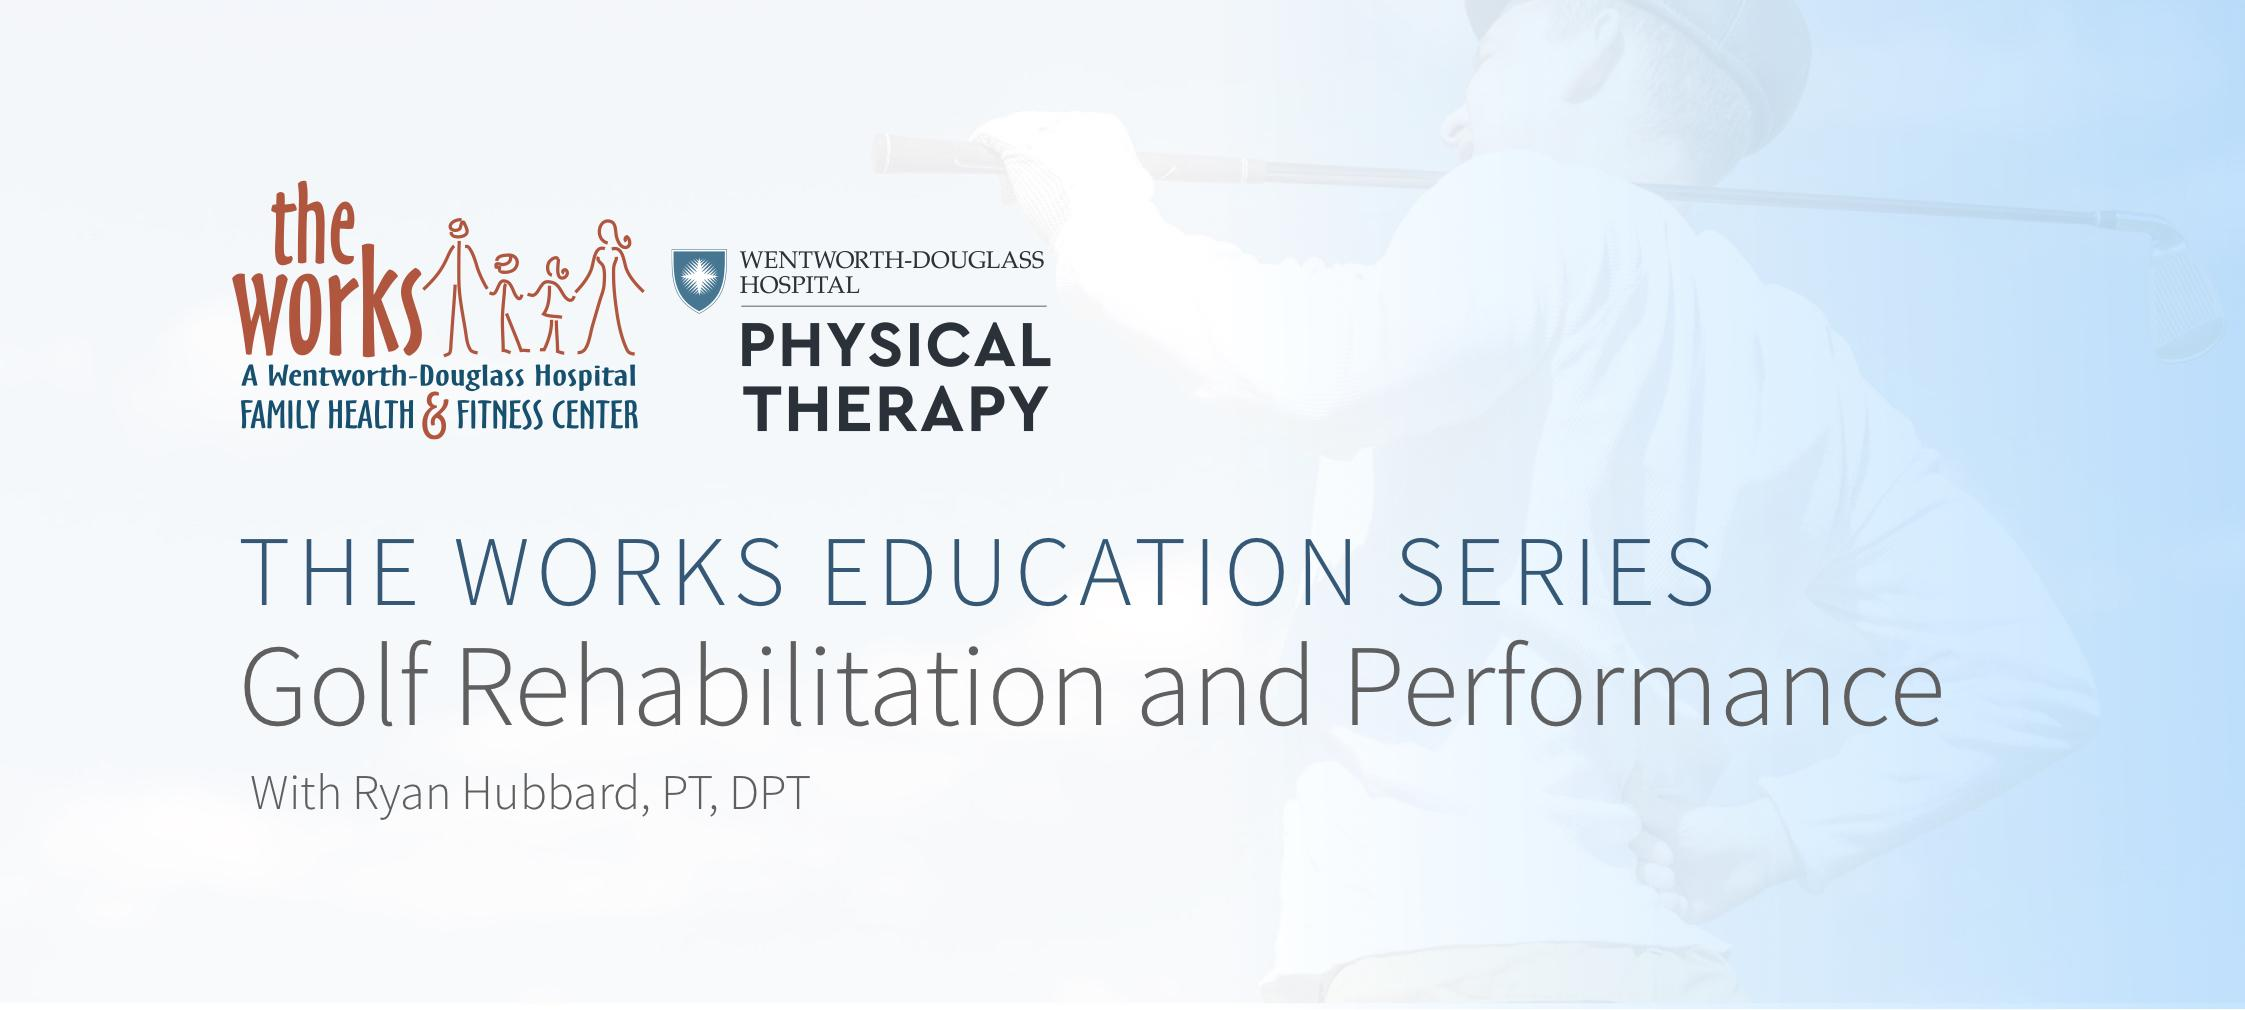 The Works Education Series: Golf Rehabilitation and Performance